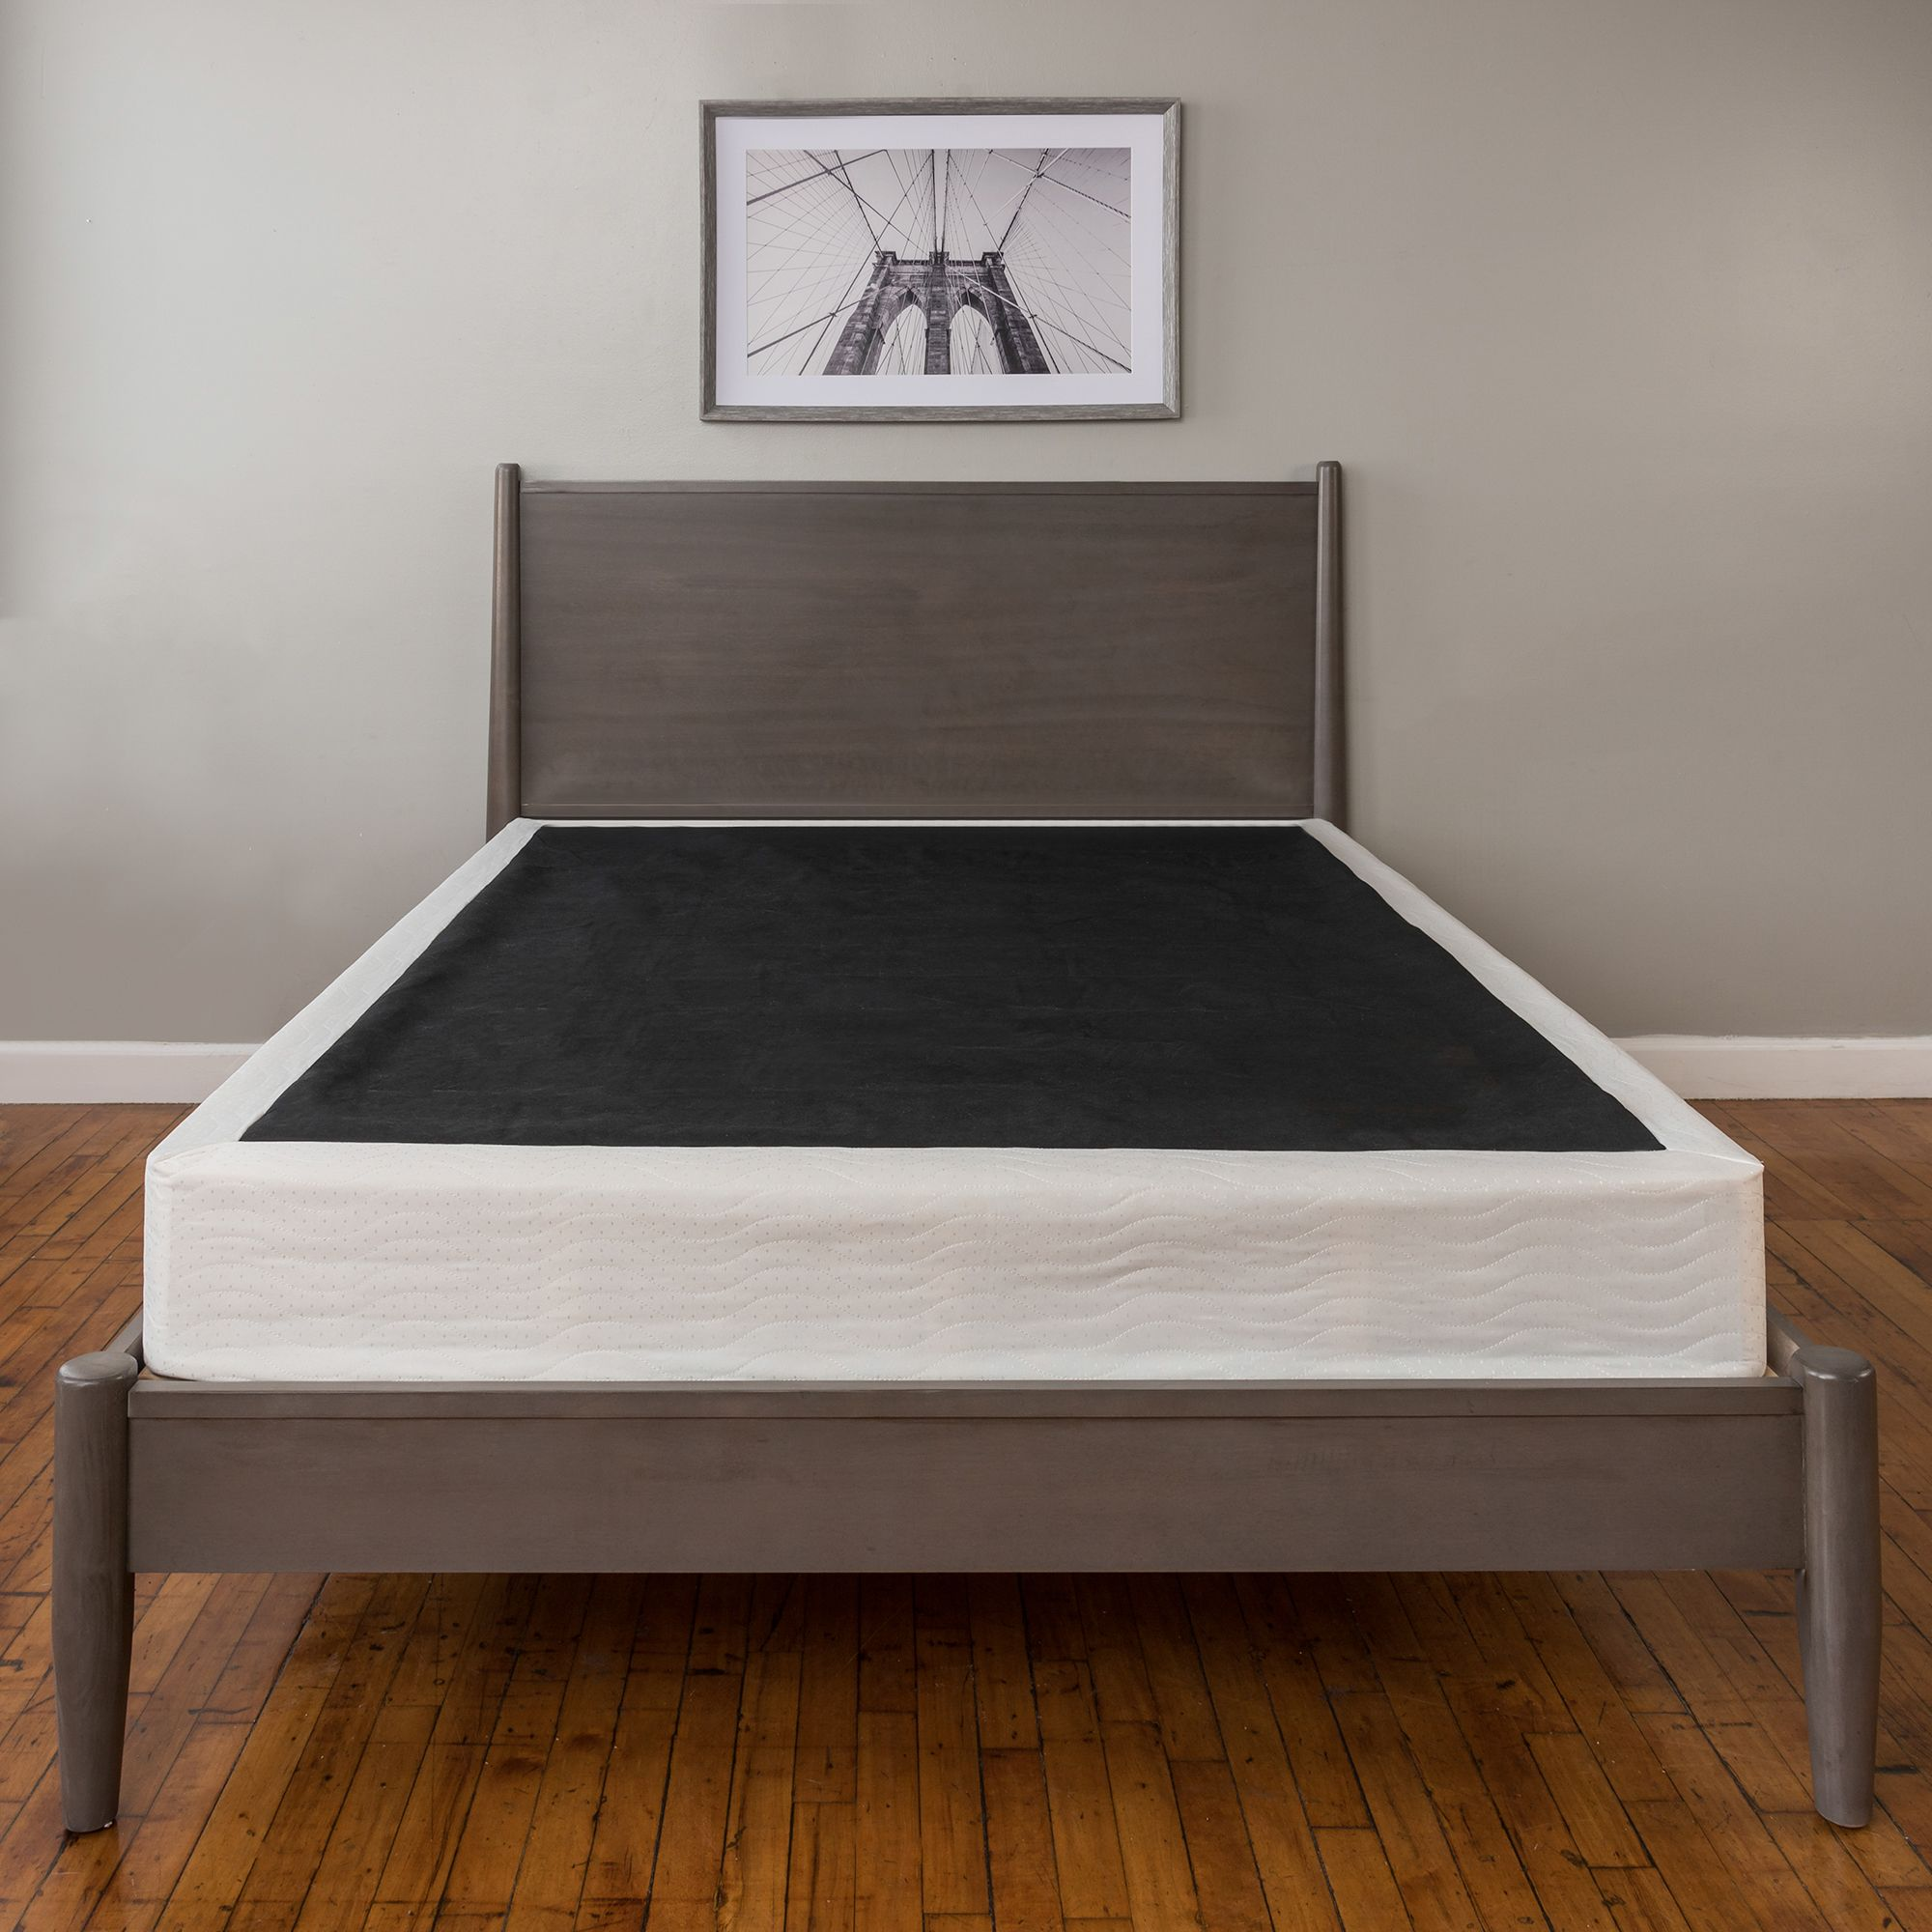 Modern Sleep Hercules Heavy Duty 14 Inch Platform Metal Bed Frame